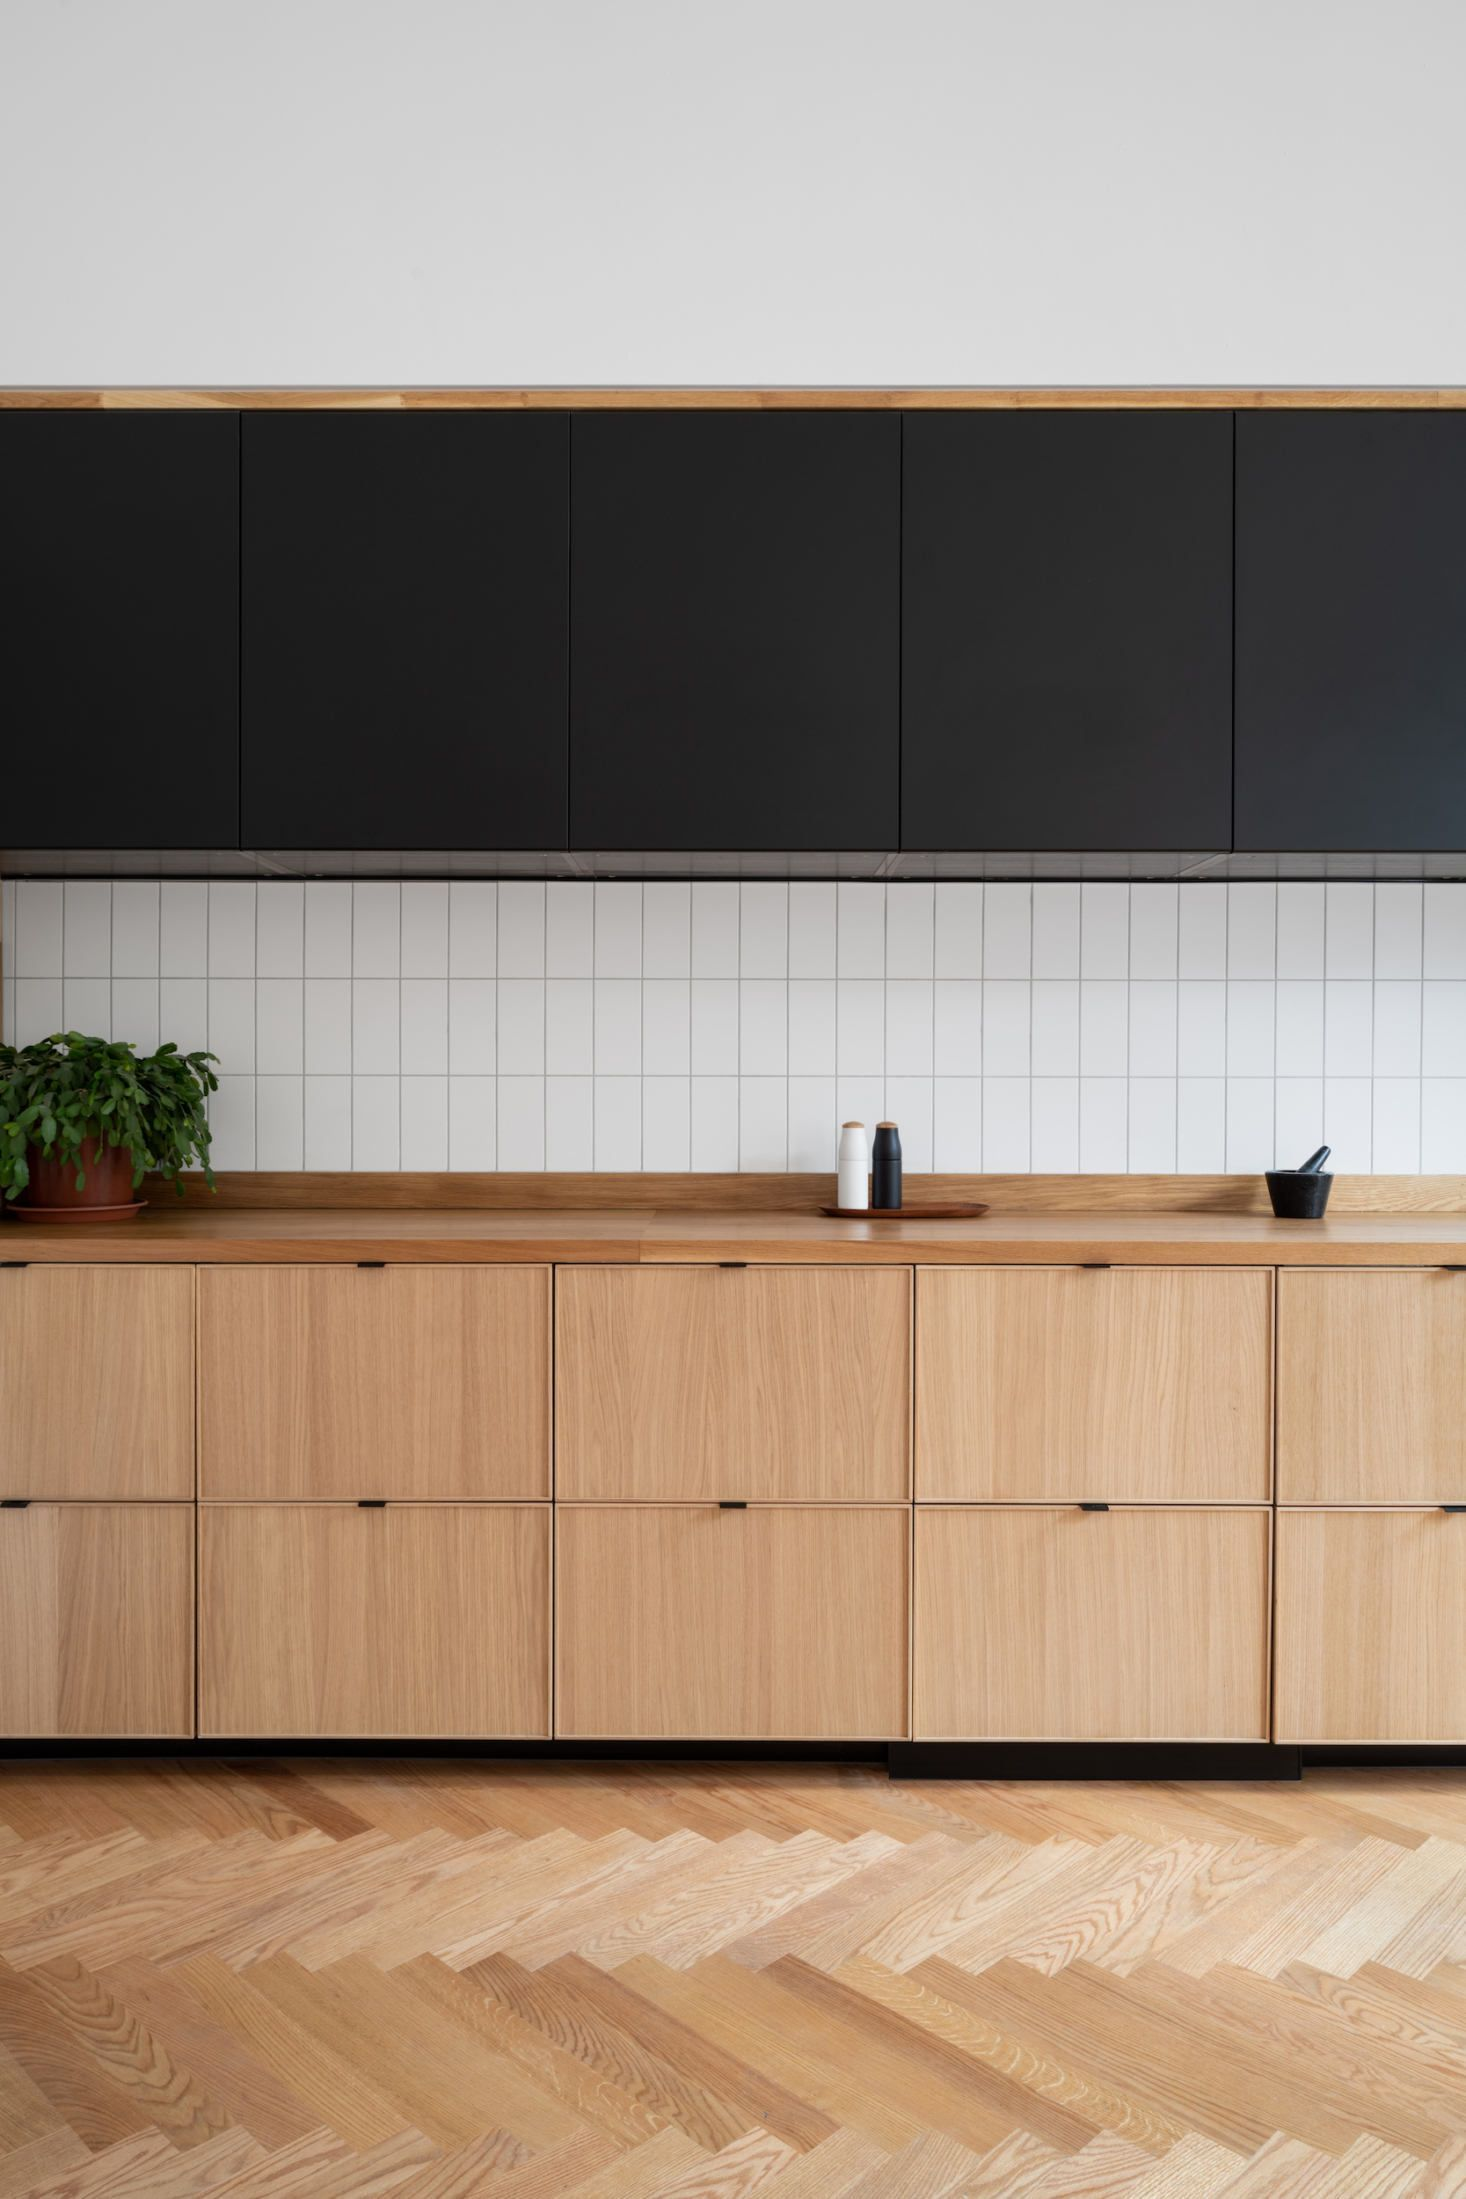 Kitchen of the Week: An Expensive-Looking Remodel for Just $13,000